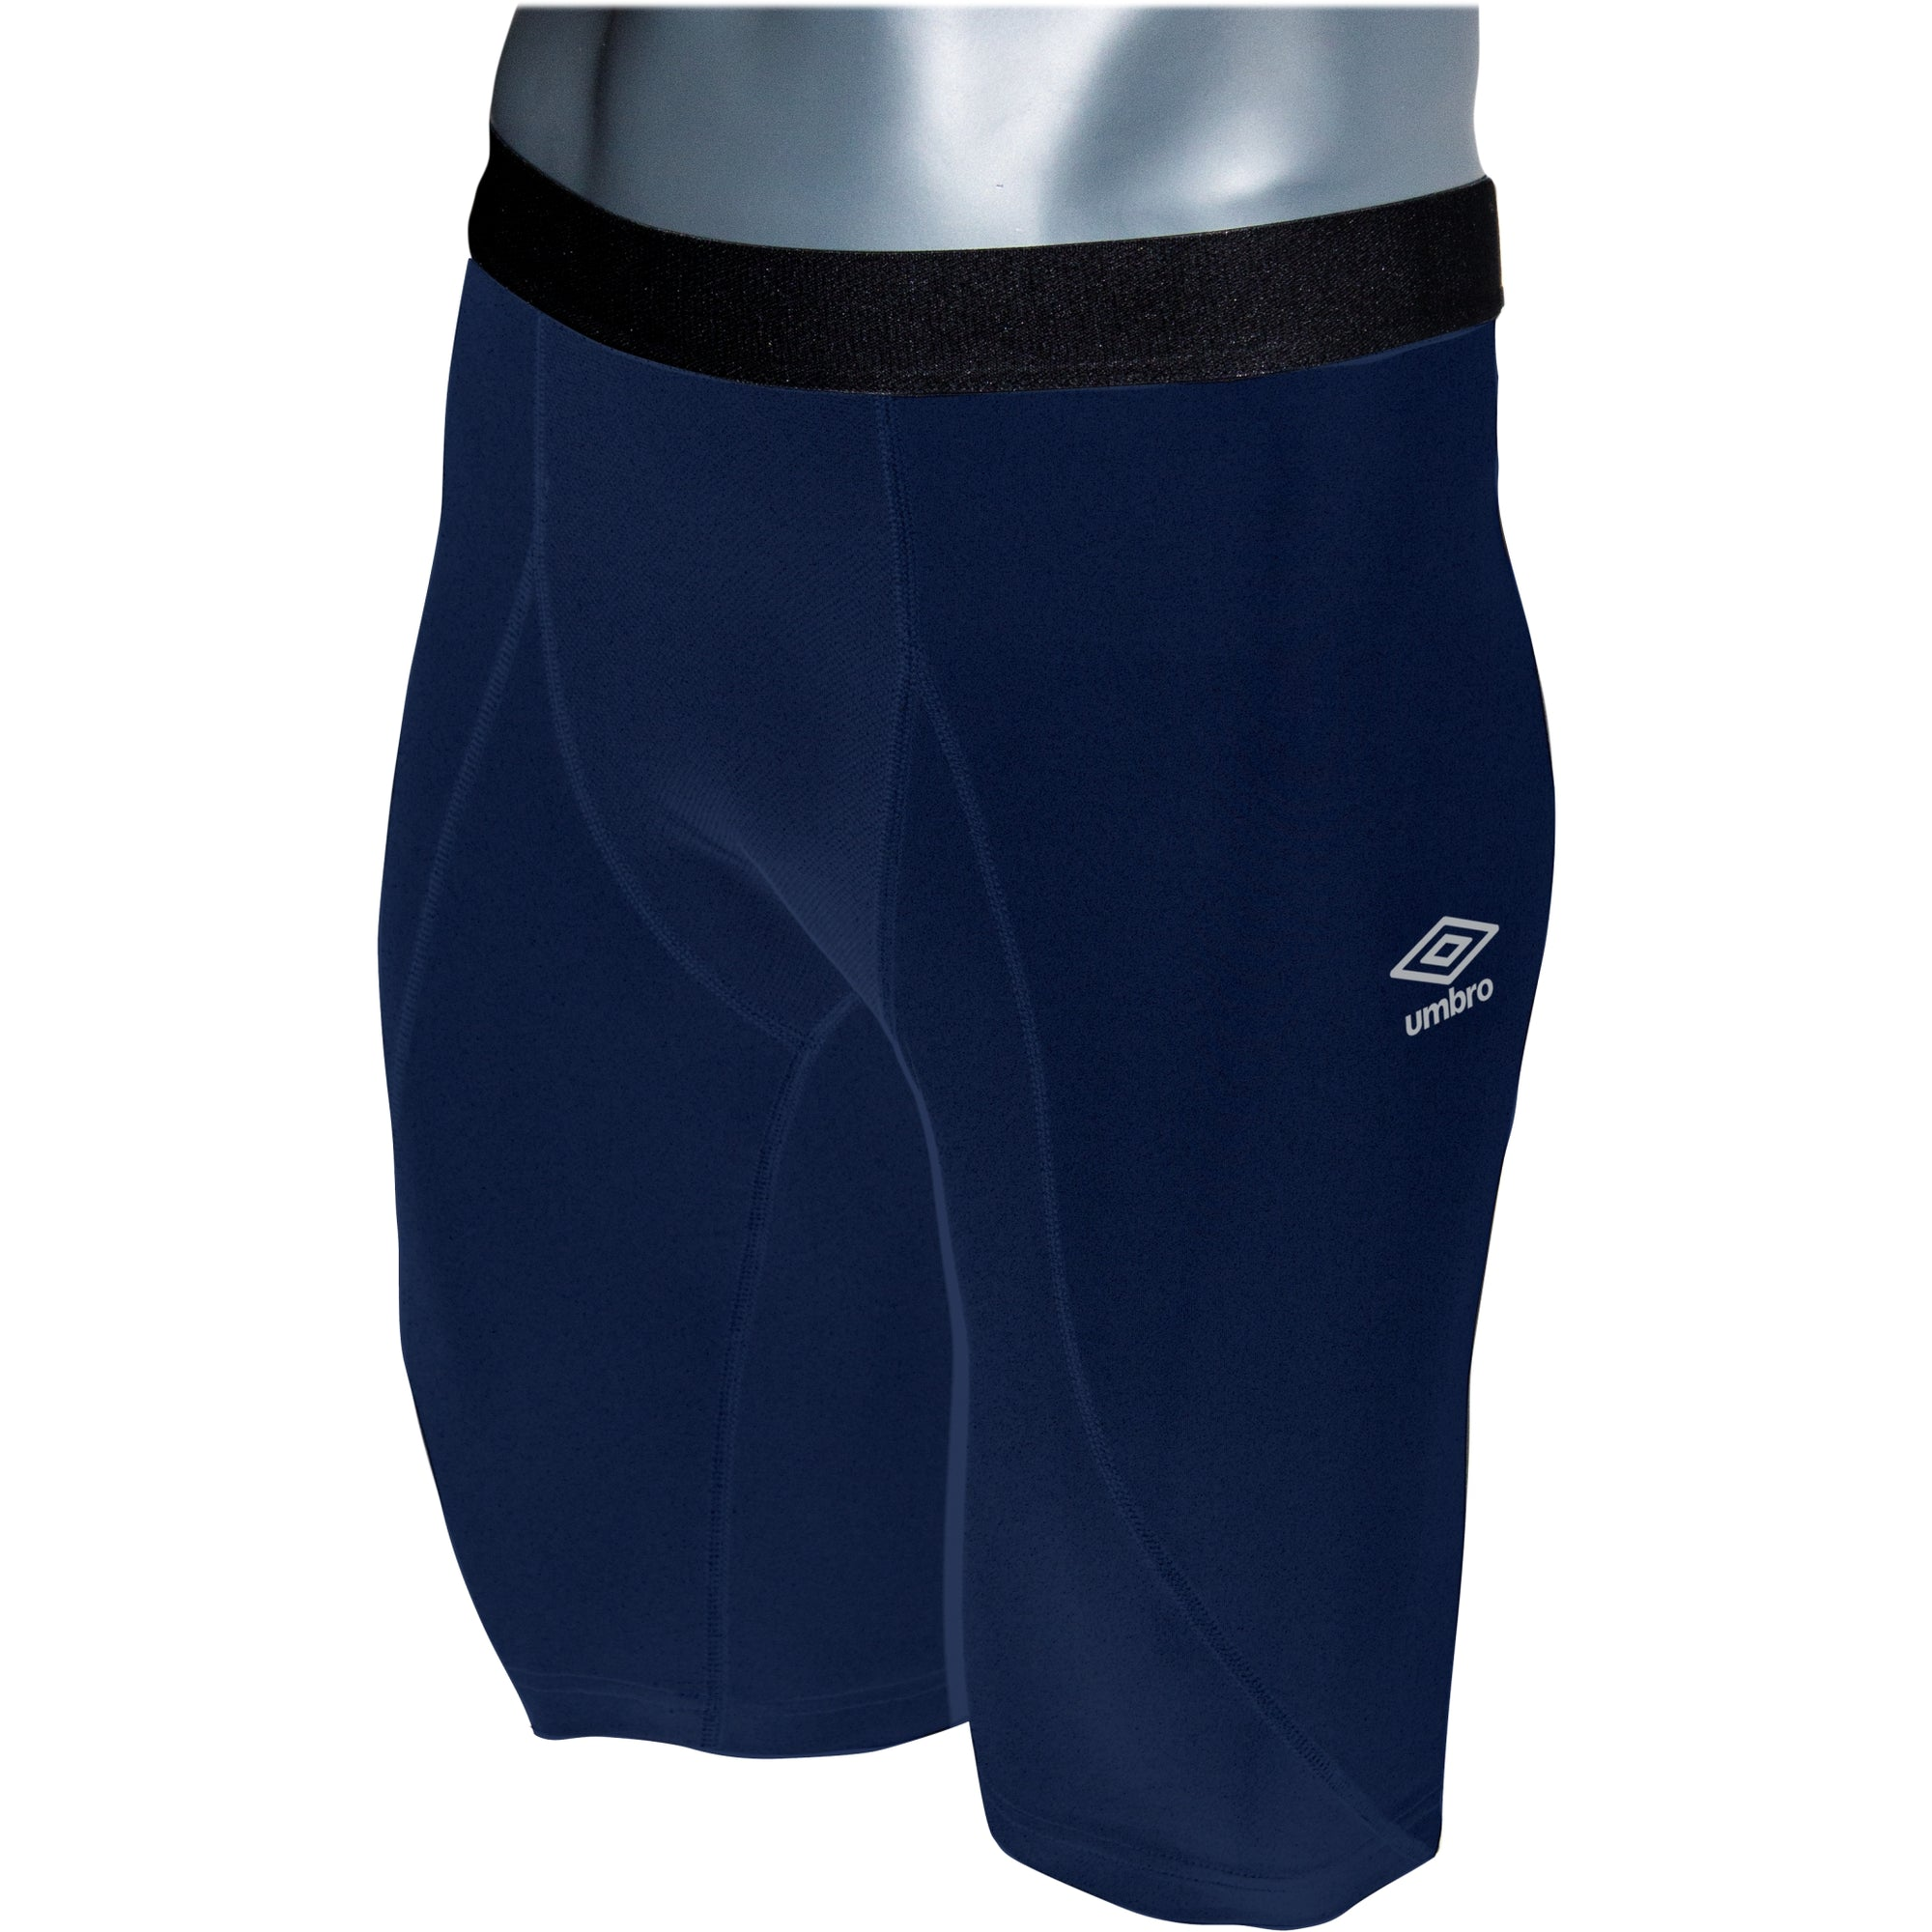 Umbro Elite Player Power Short in navy with black waist band